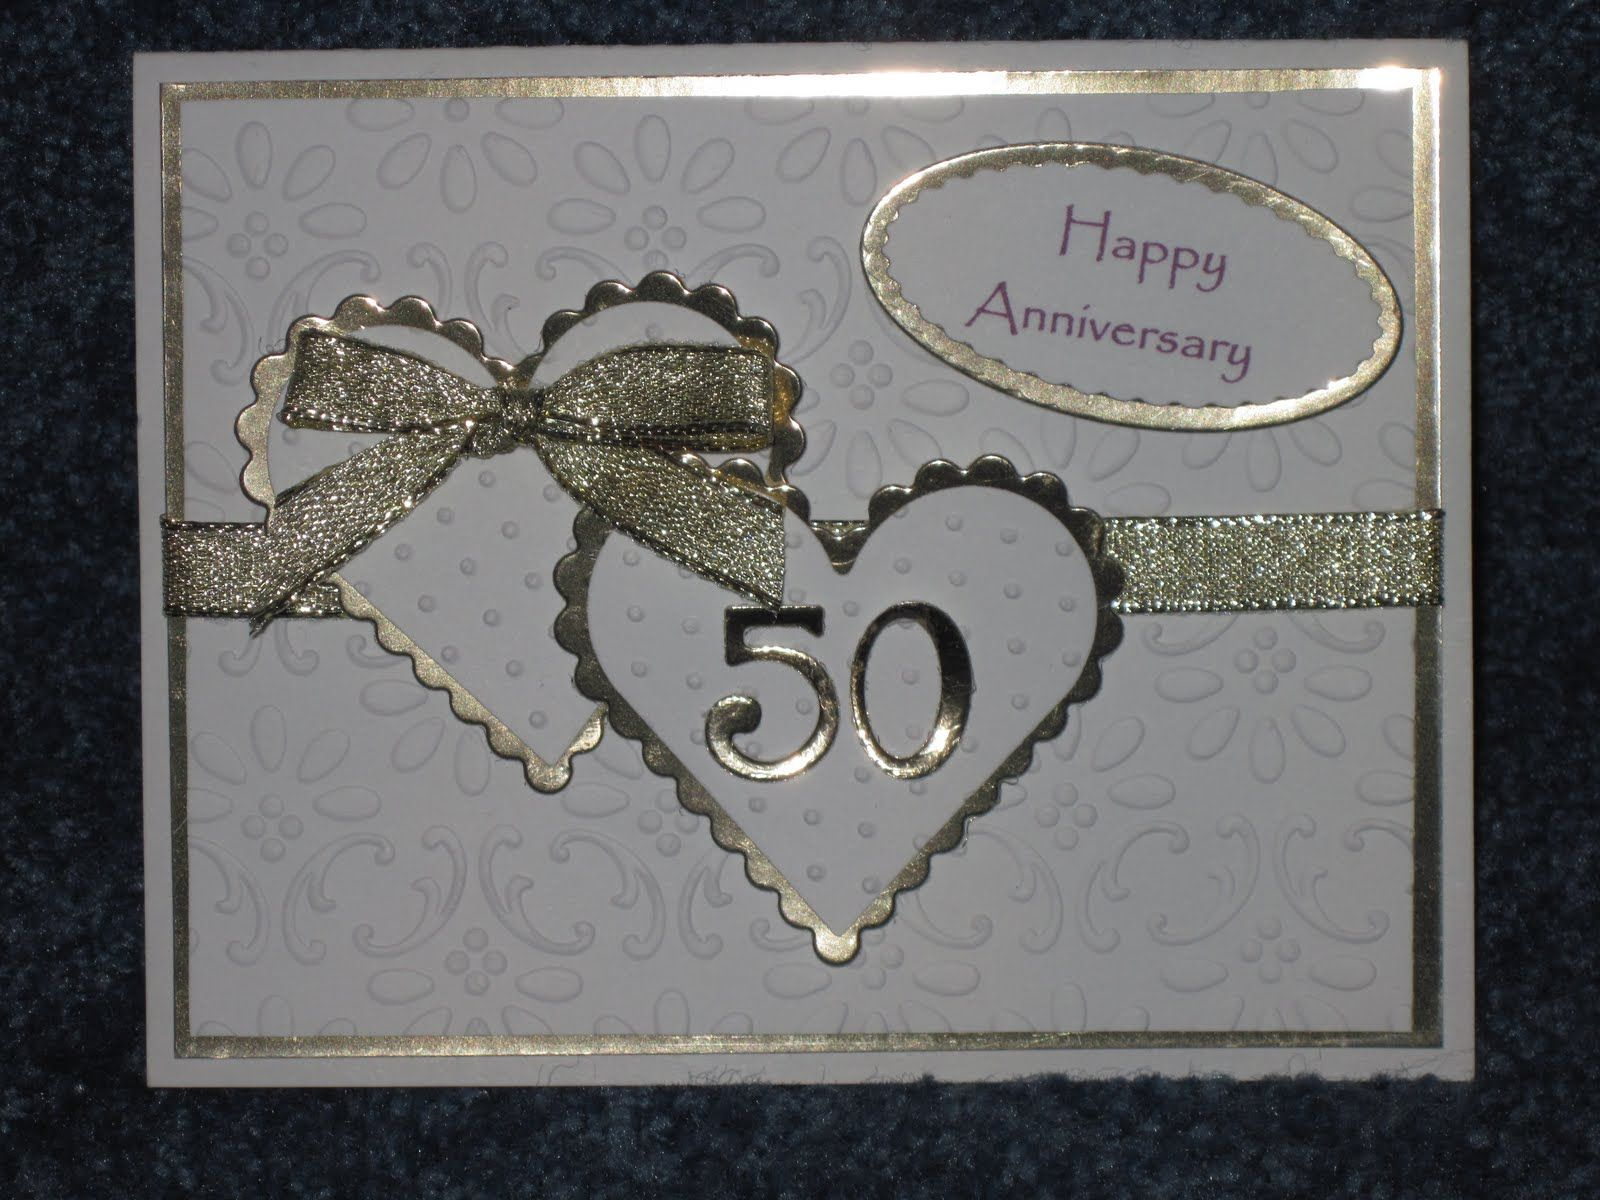 handmade 50th. Anniversary cards - Yahoo! Search Results ...